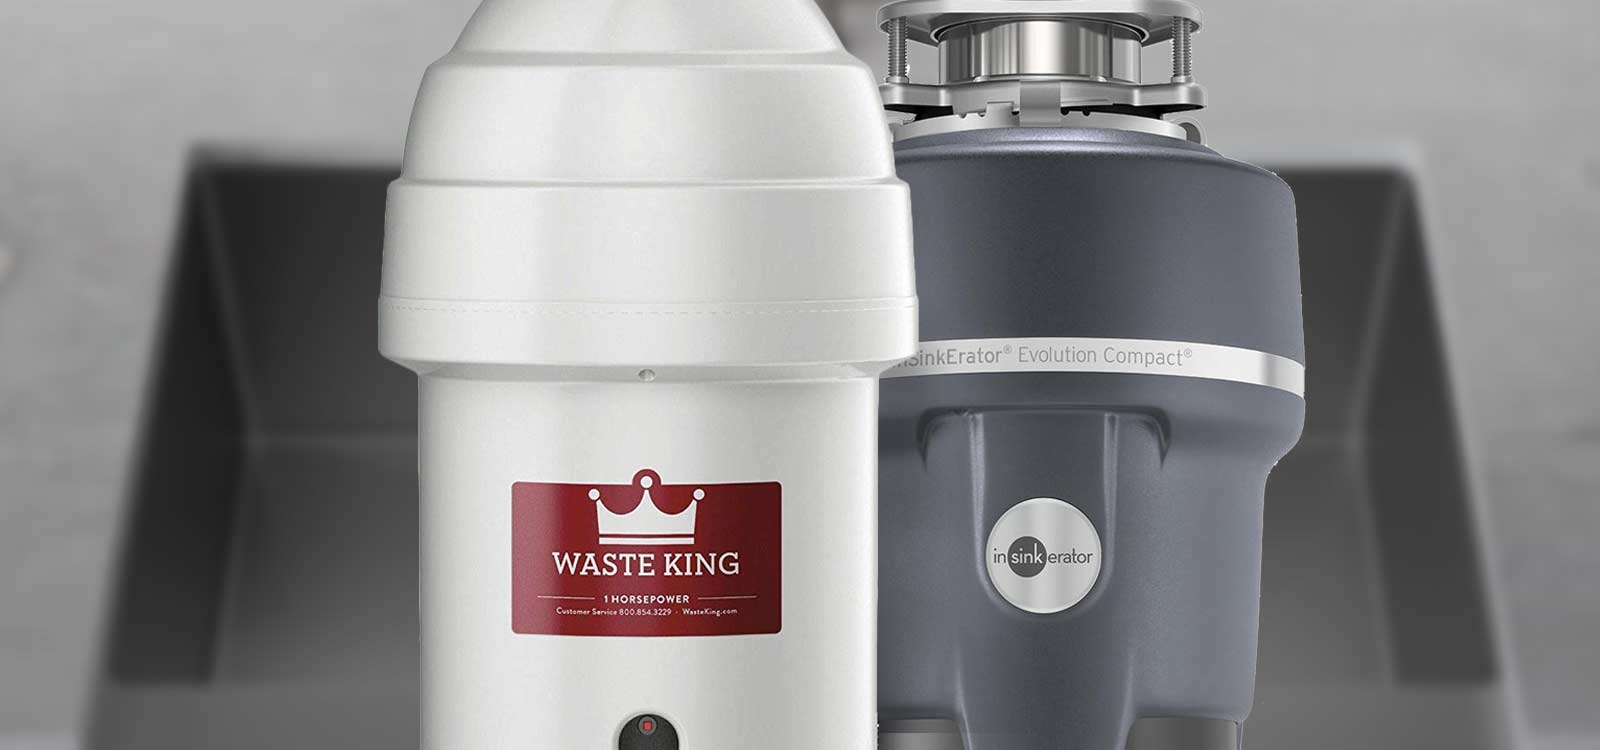 Waste-King-vs-InSinkErator-garbage-disposals-header